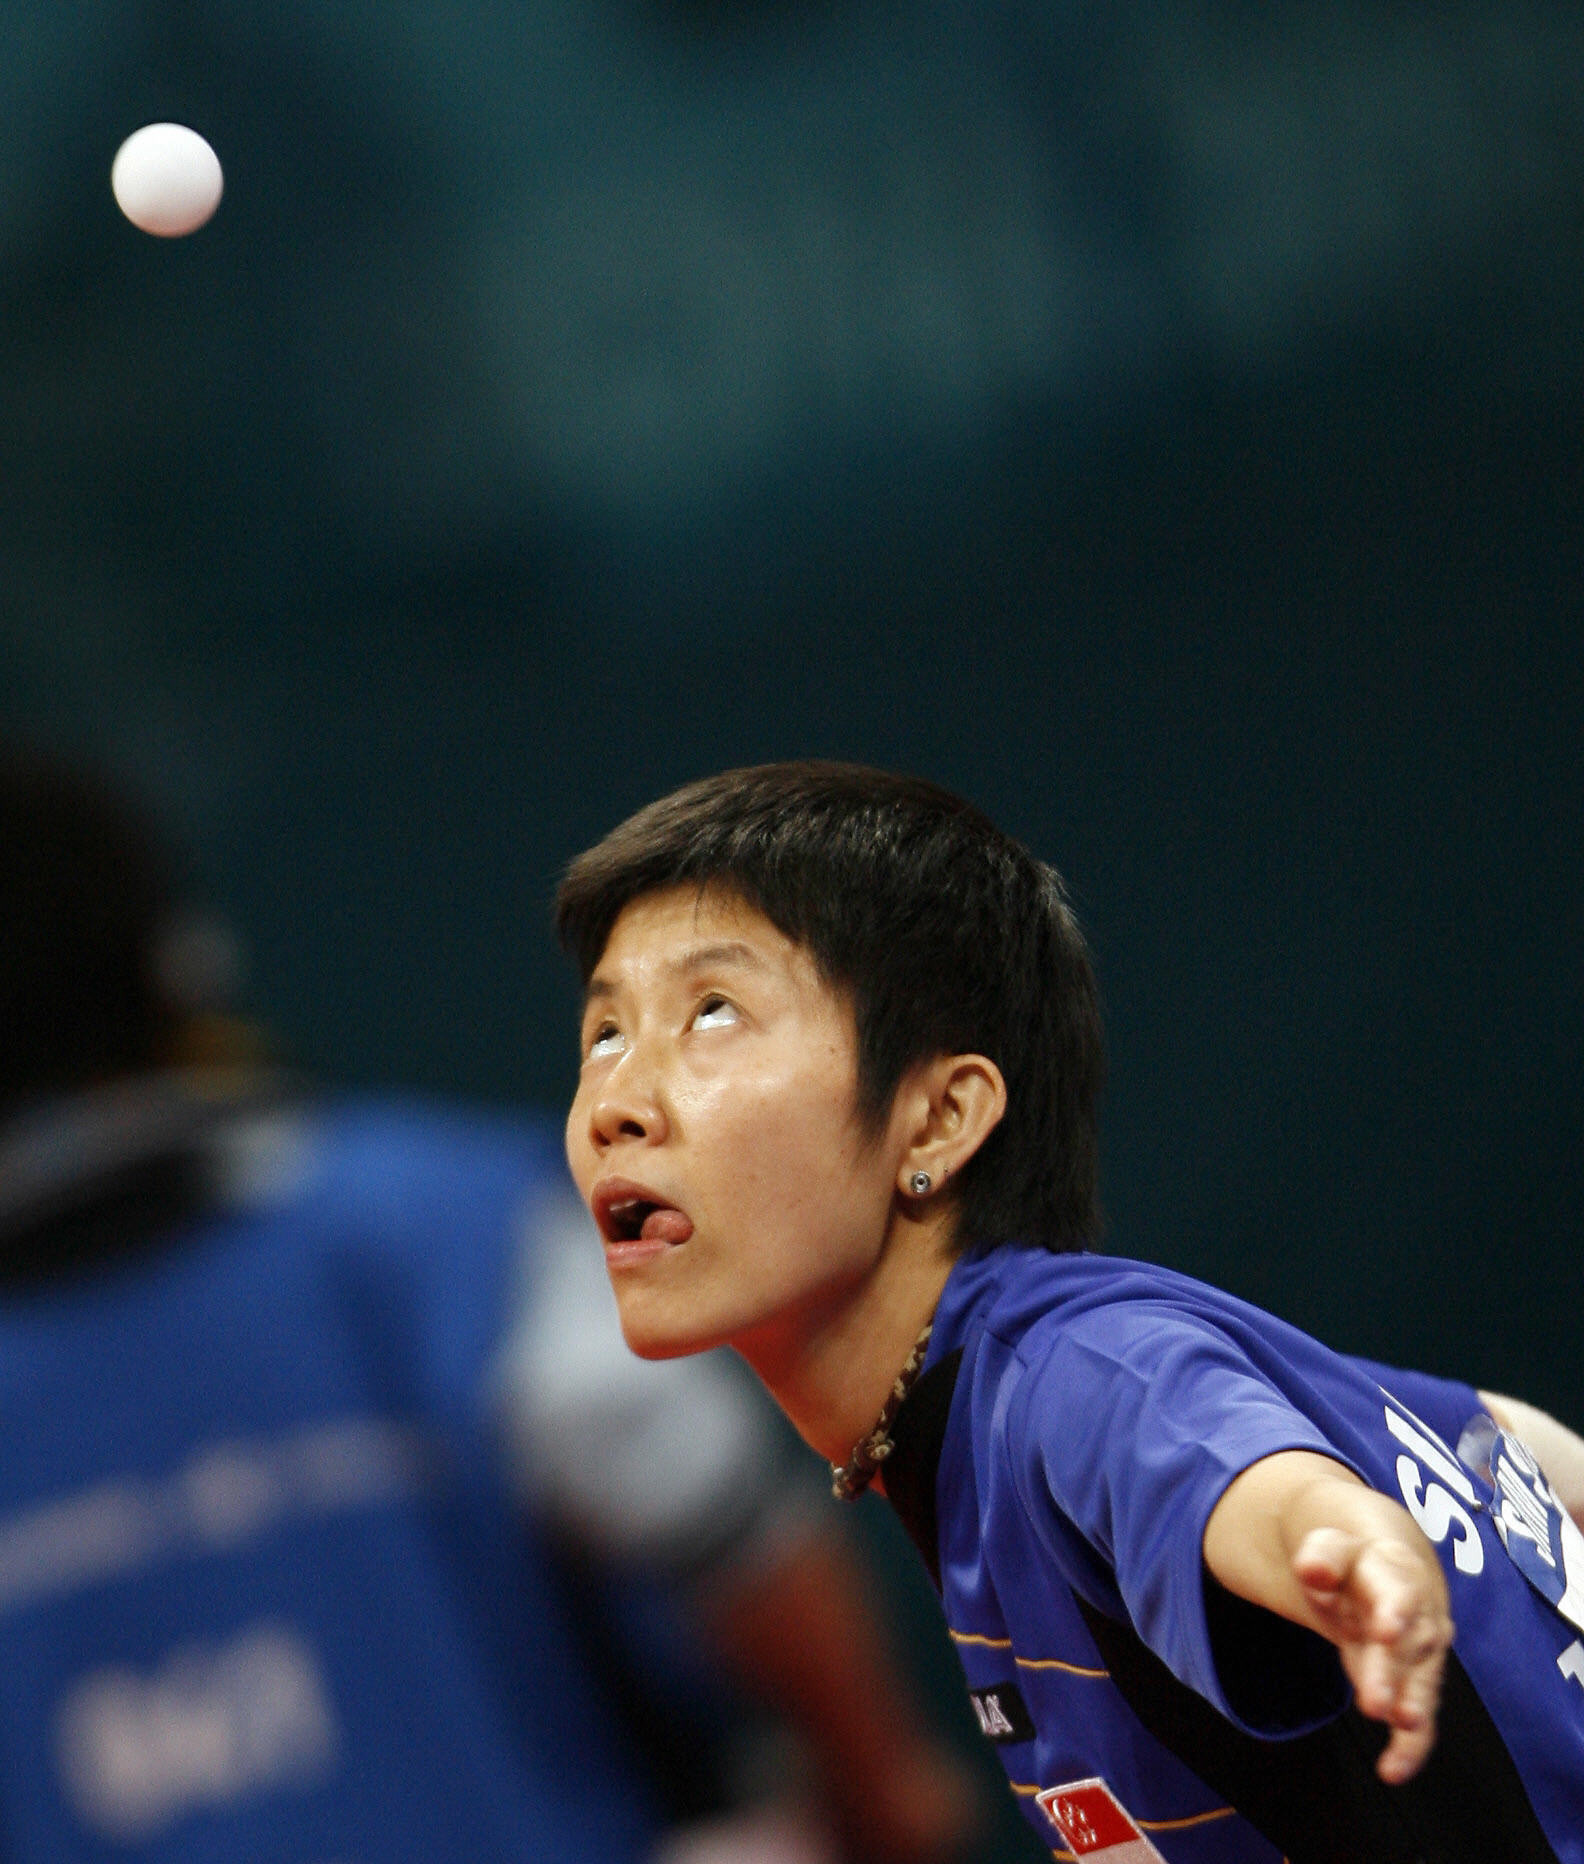 Tan Paey Fern is an experienced international athlete and has competed at major events including the Olympics and Commonwealth Games ©Getty Images